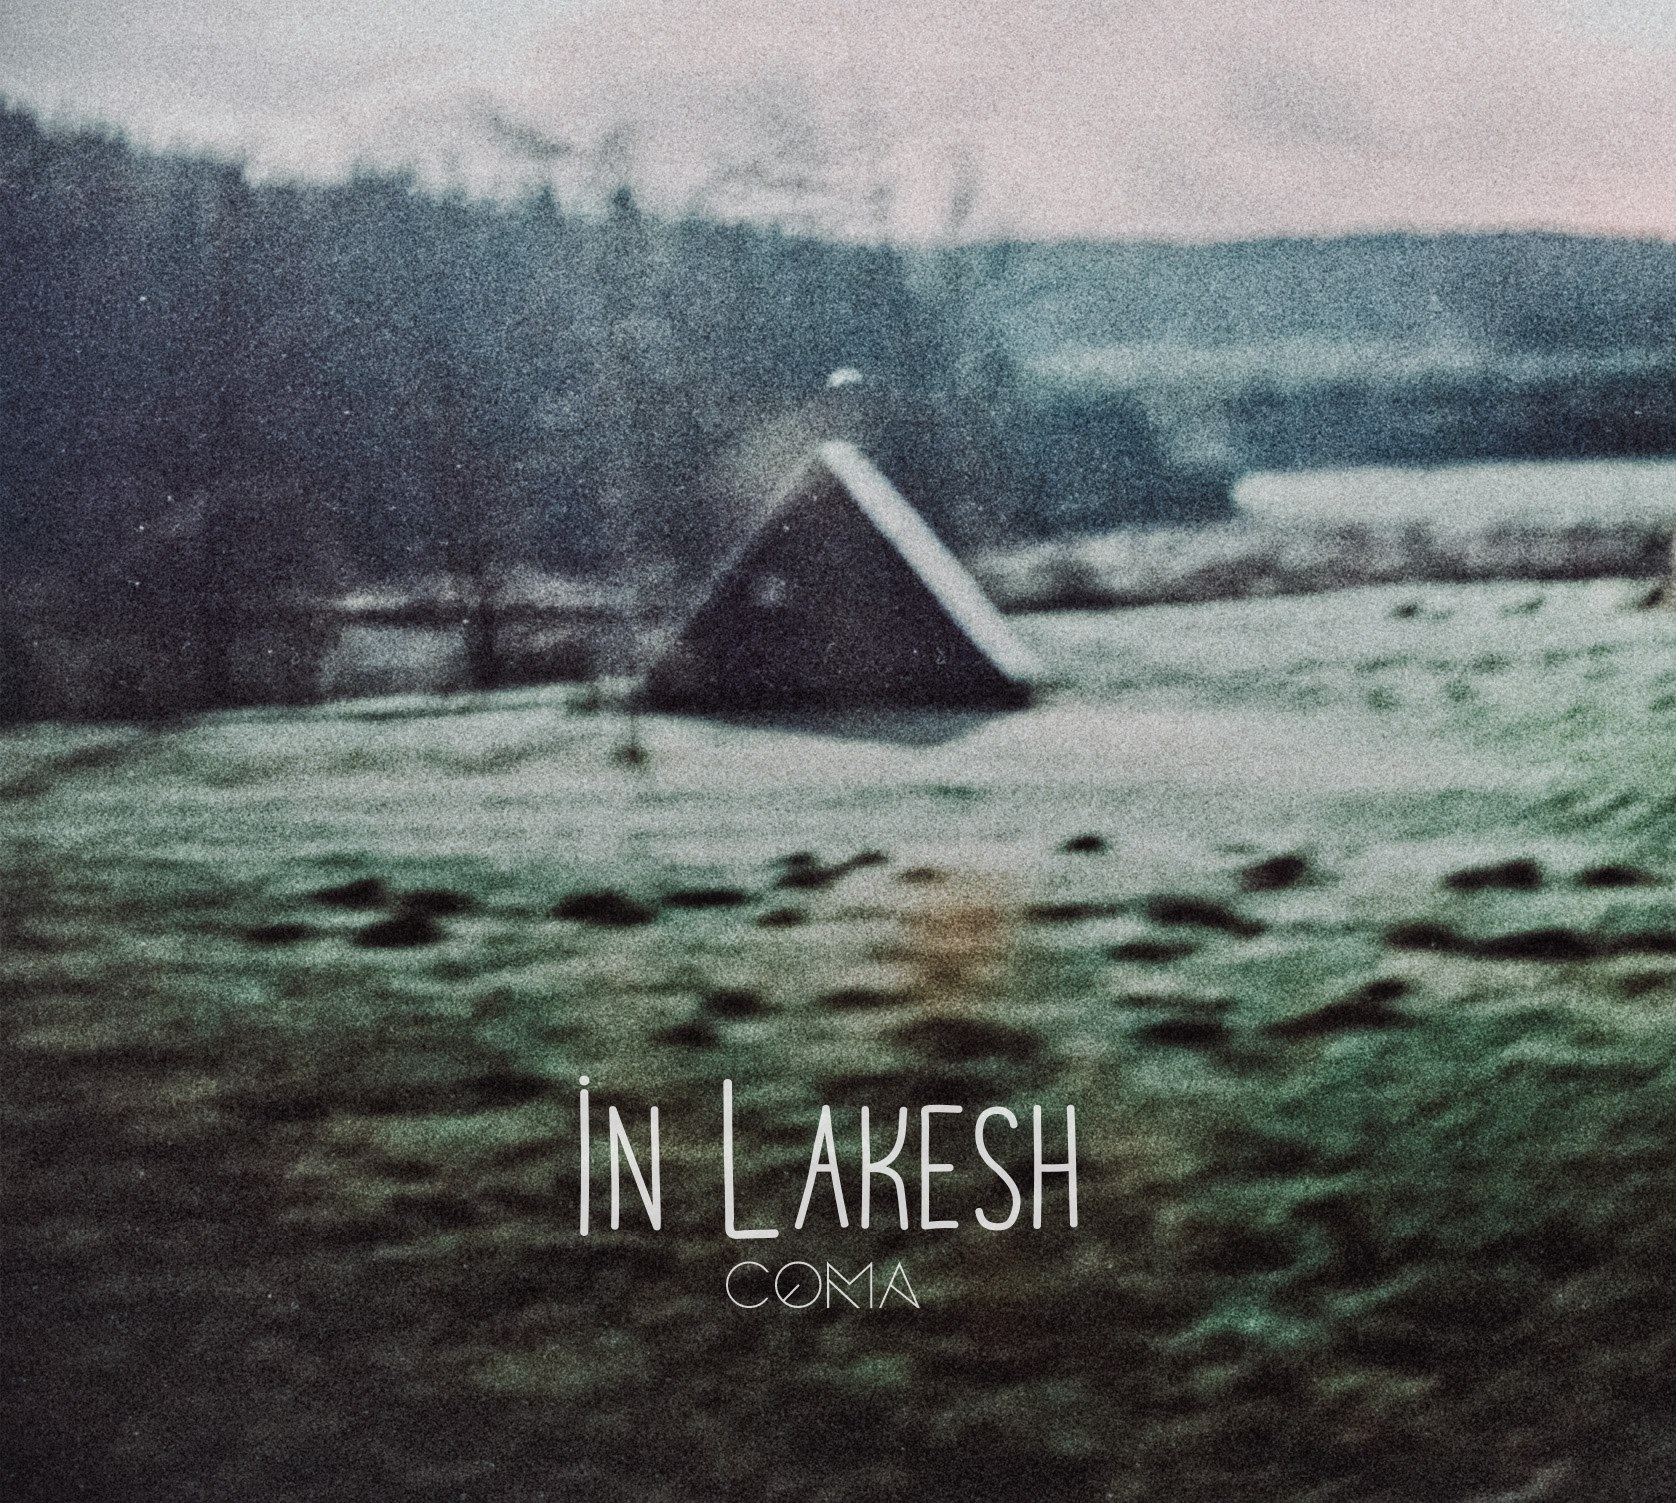 In Lakesh - Coma